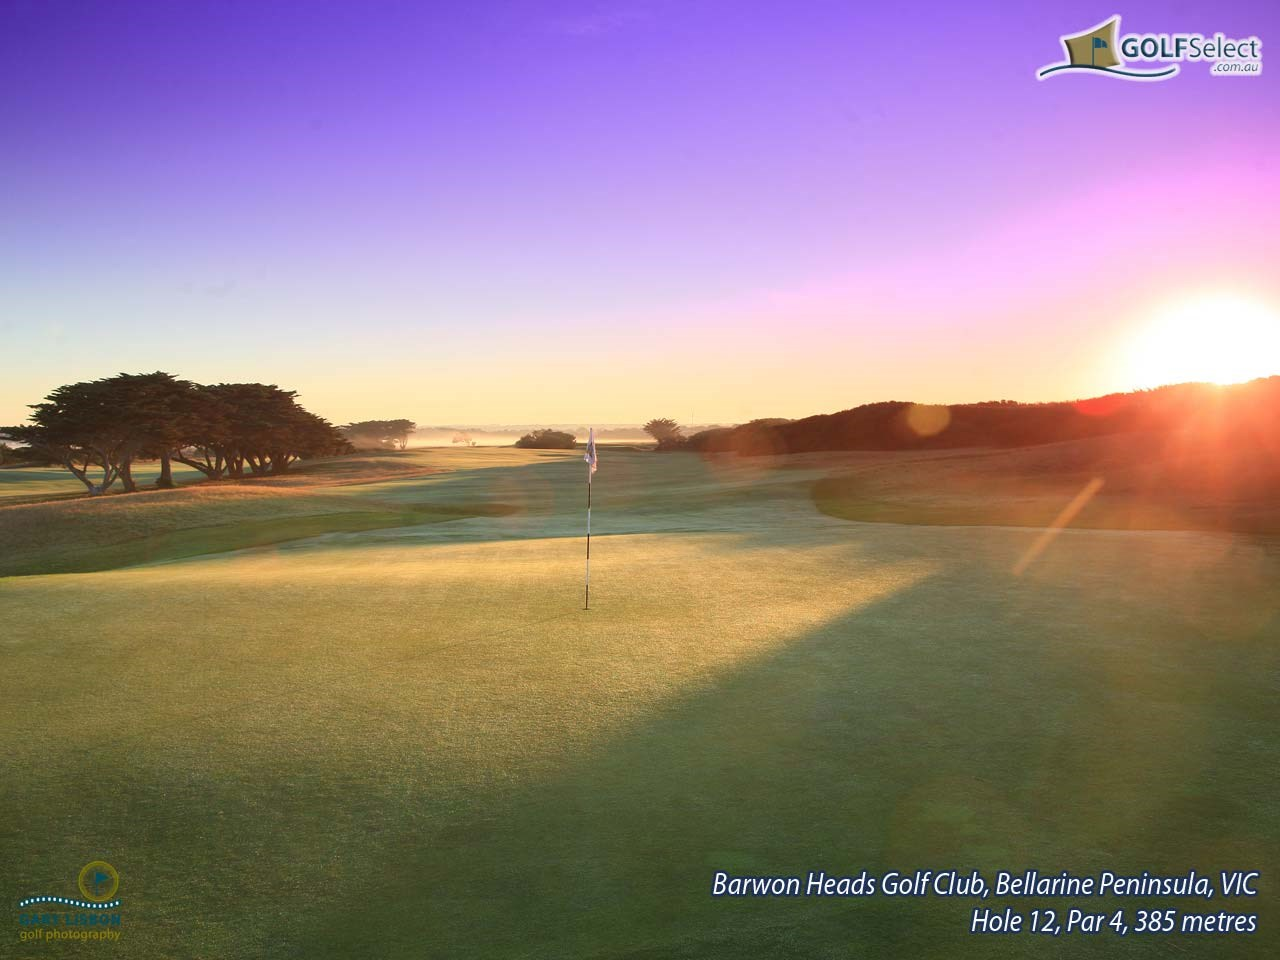 Barwon Heads Golf Club Hole 12, Par 4, 385 metres